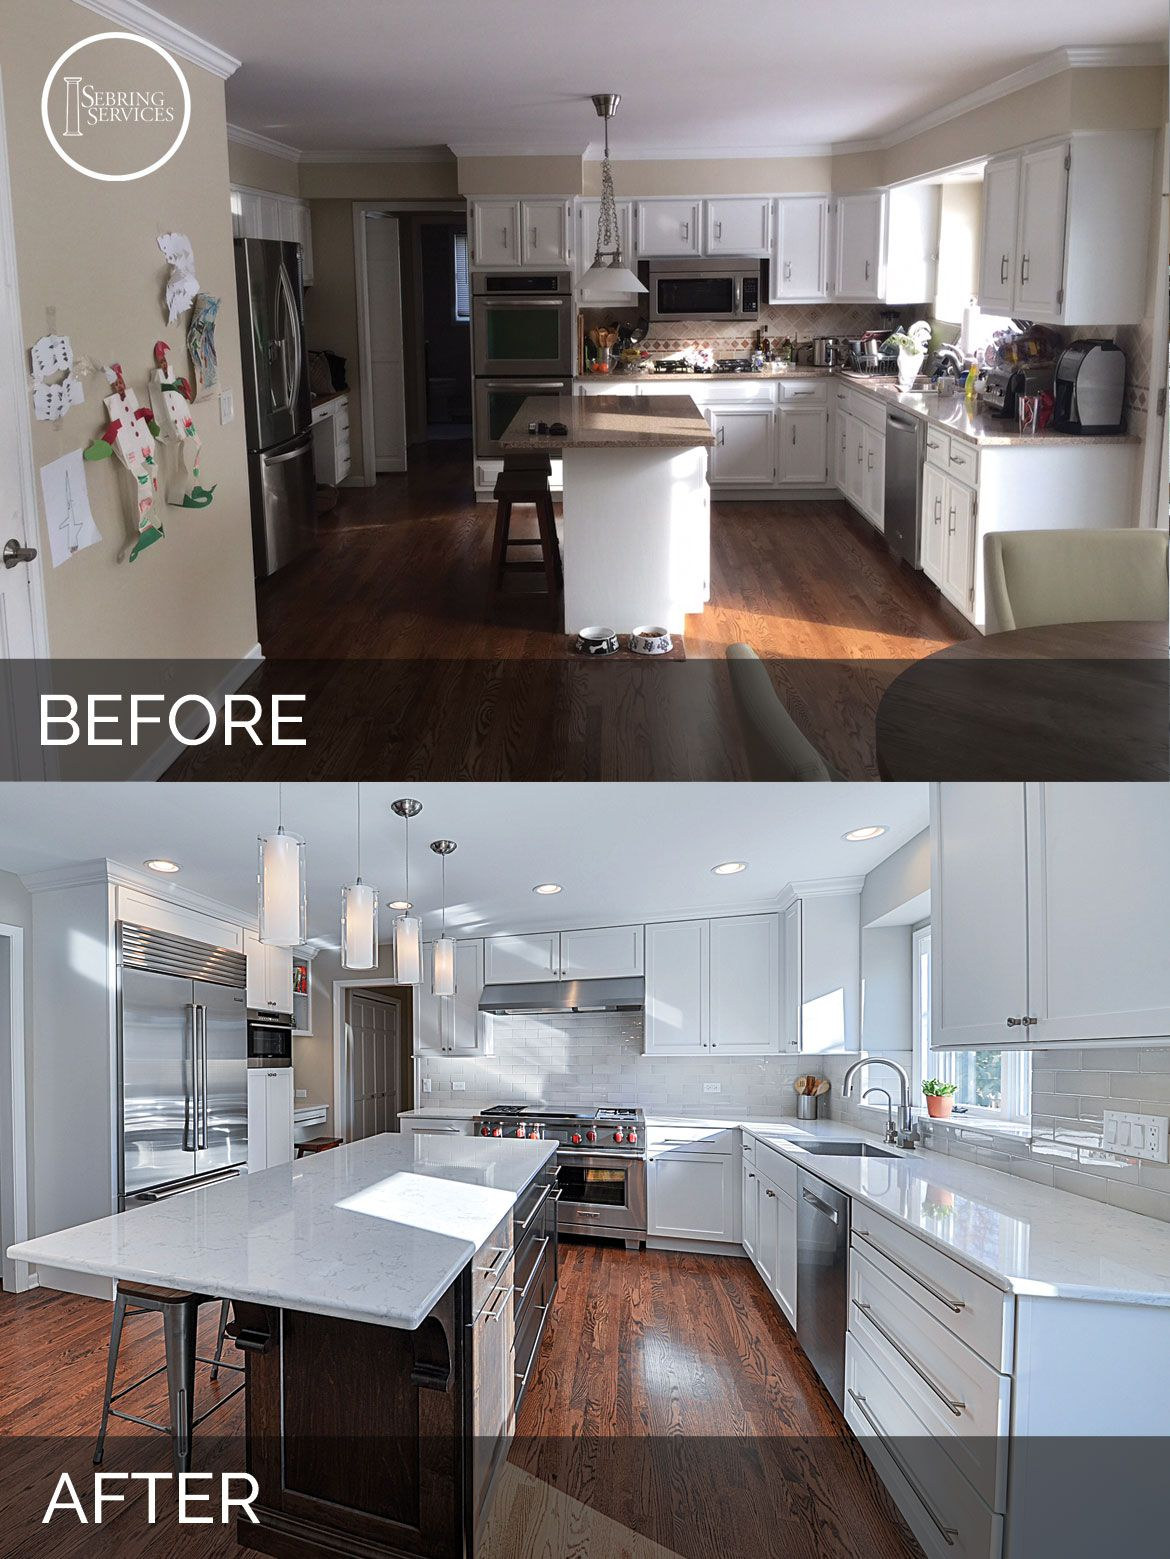 15 hottest kitchen remodel before and after on a budget - Diy bathroom remodel before and after ...